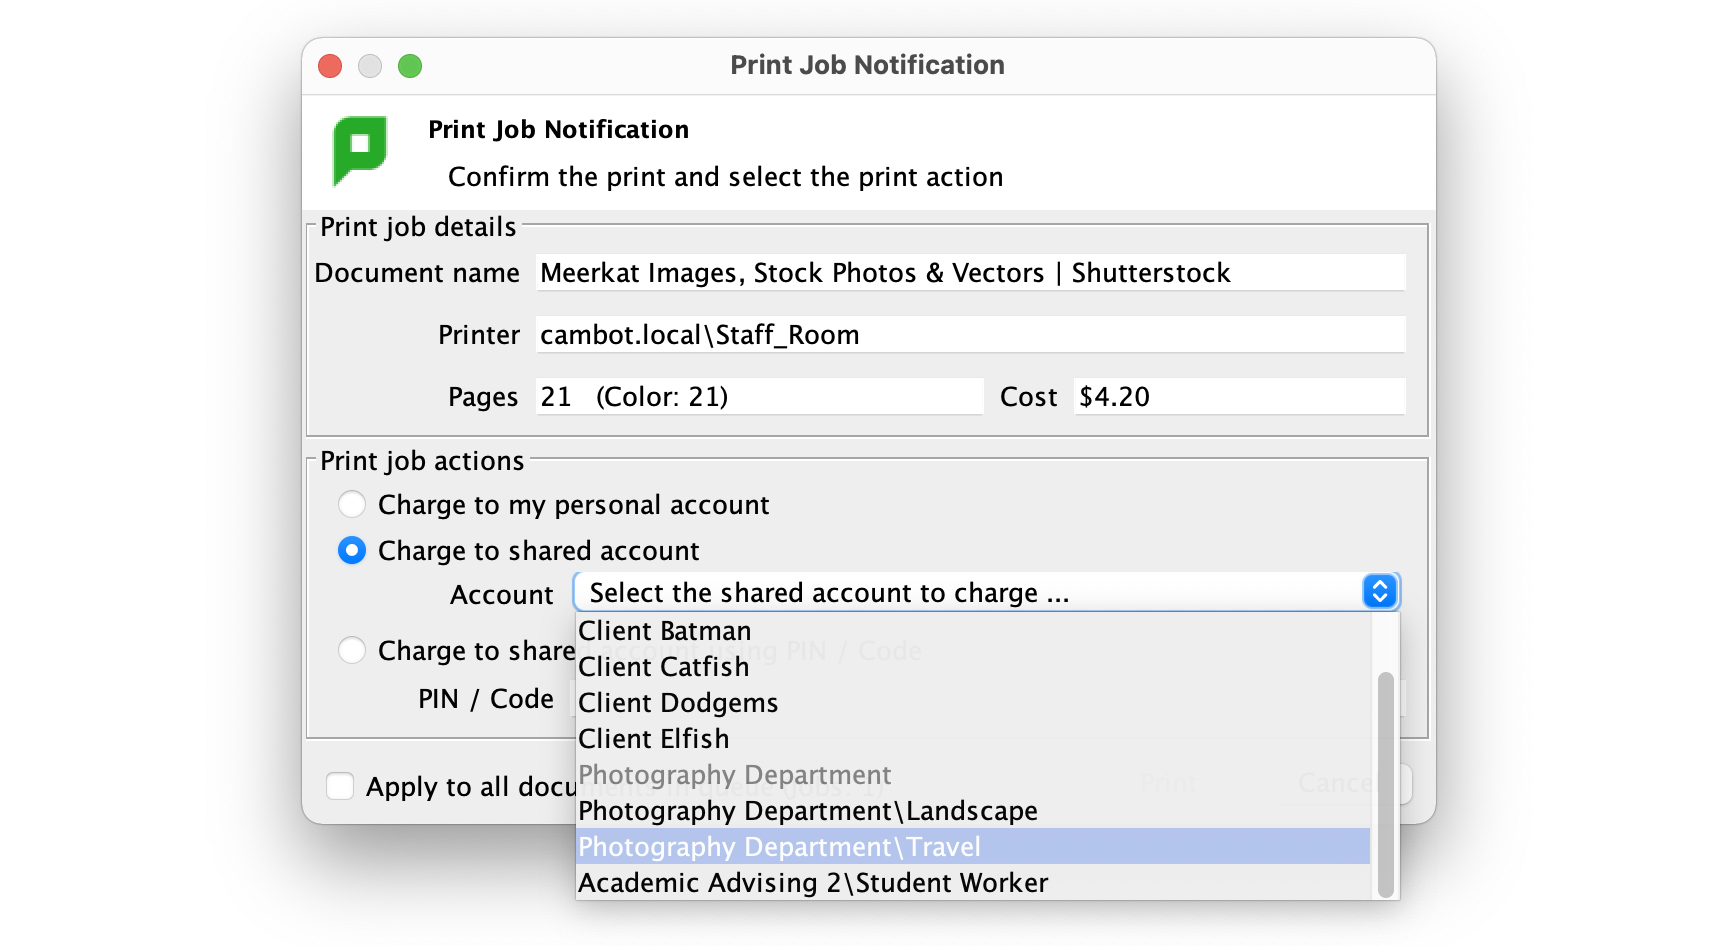 A screenshot of the PaperCut Standard User Client showing the drop down list of shared accounts available.